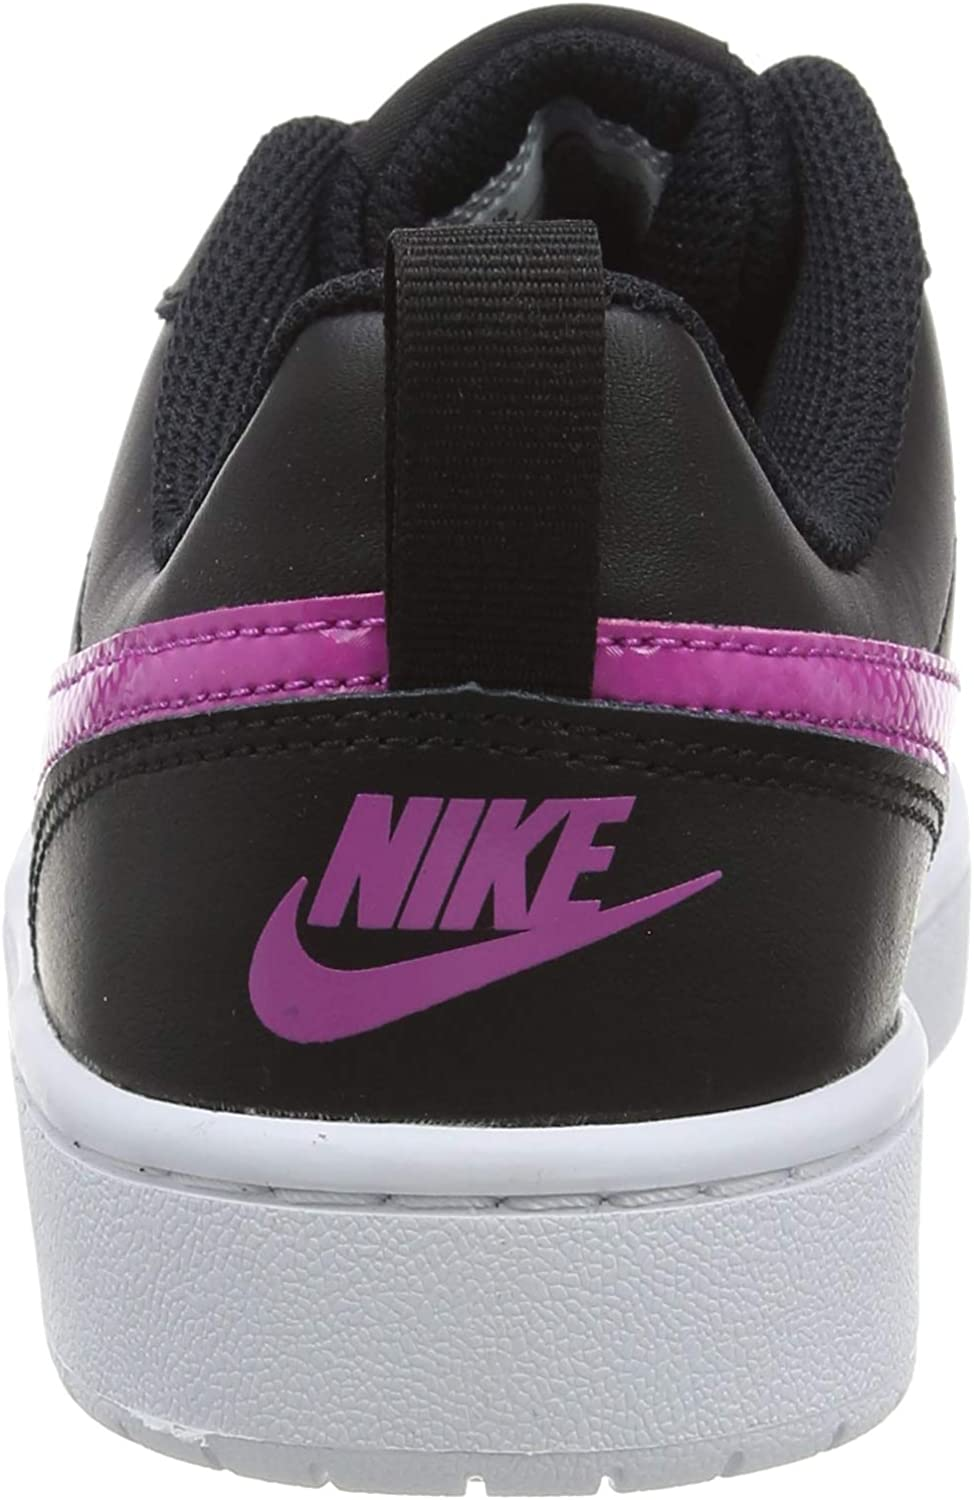 GS NIKE Court Borough Low 2 Zapatillas de b/ásquetbol para Ni/ños